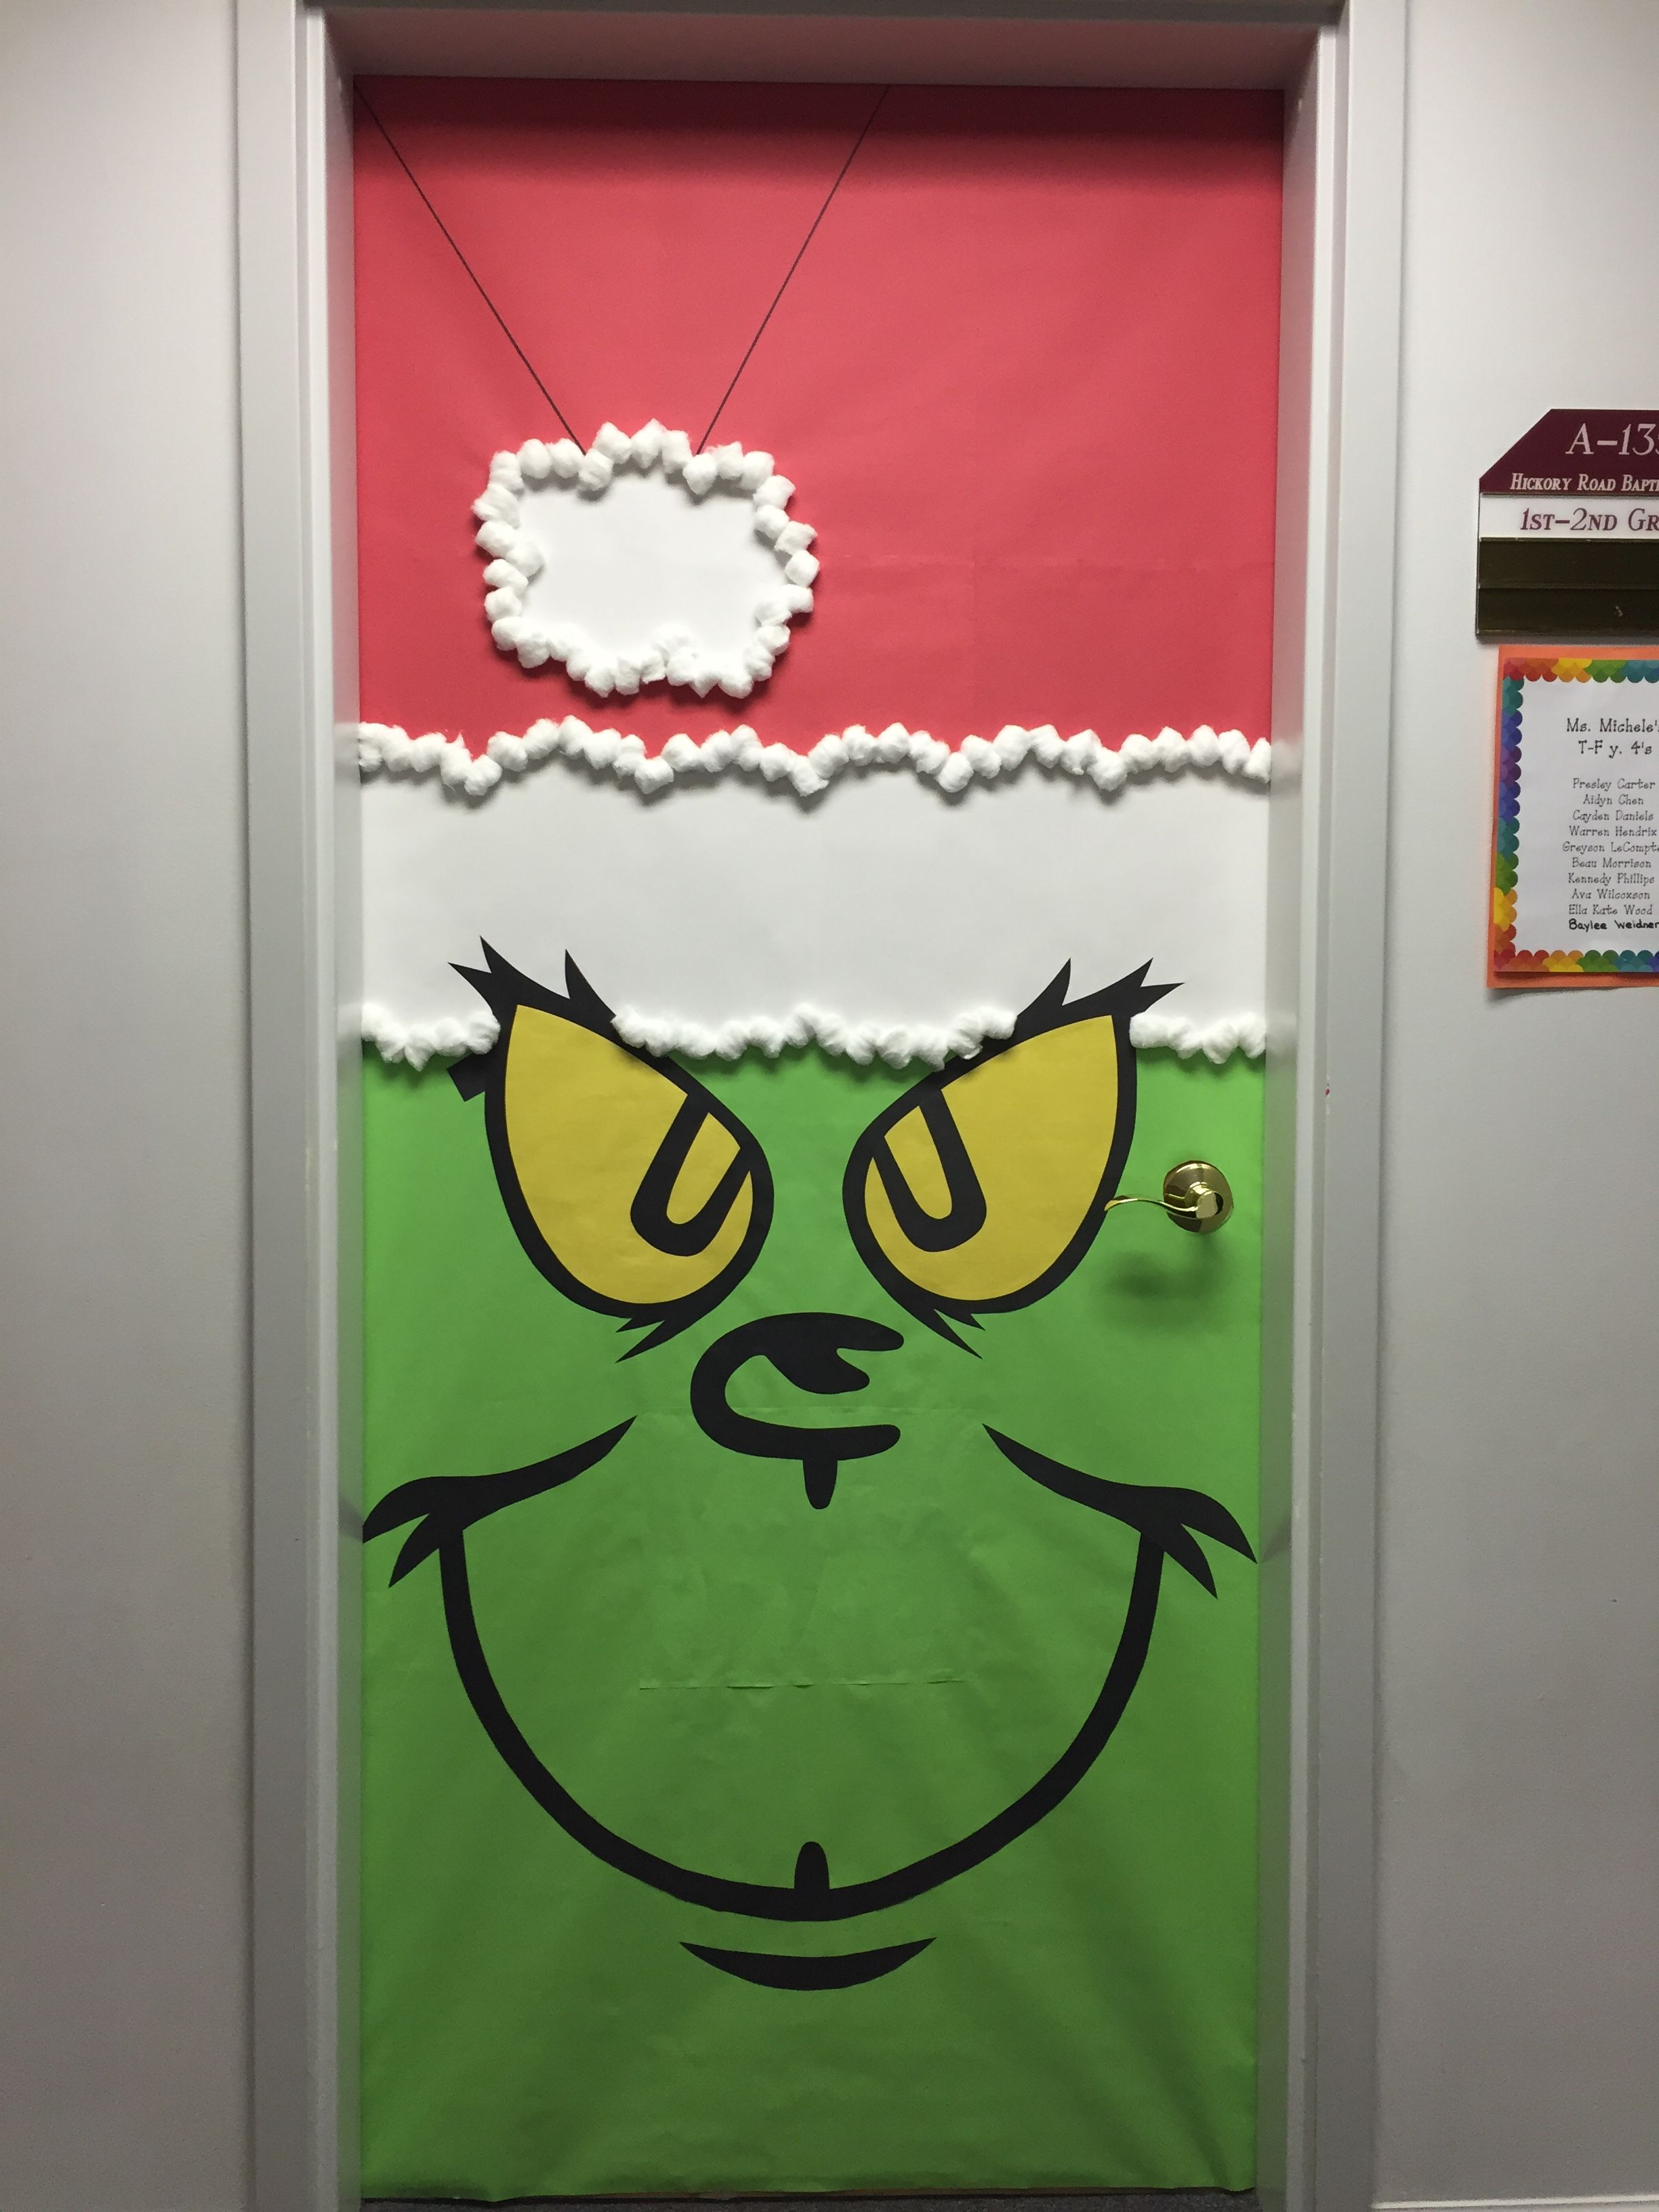 Grinch Christmas Door Decorations - Christmas Lights Card ...